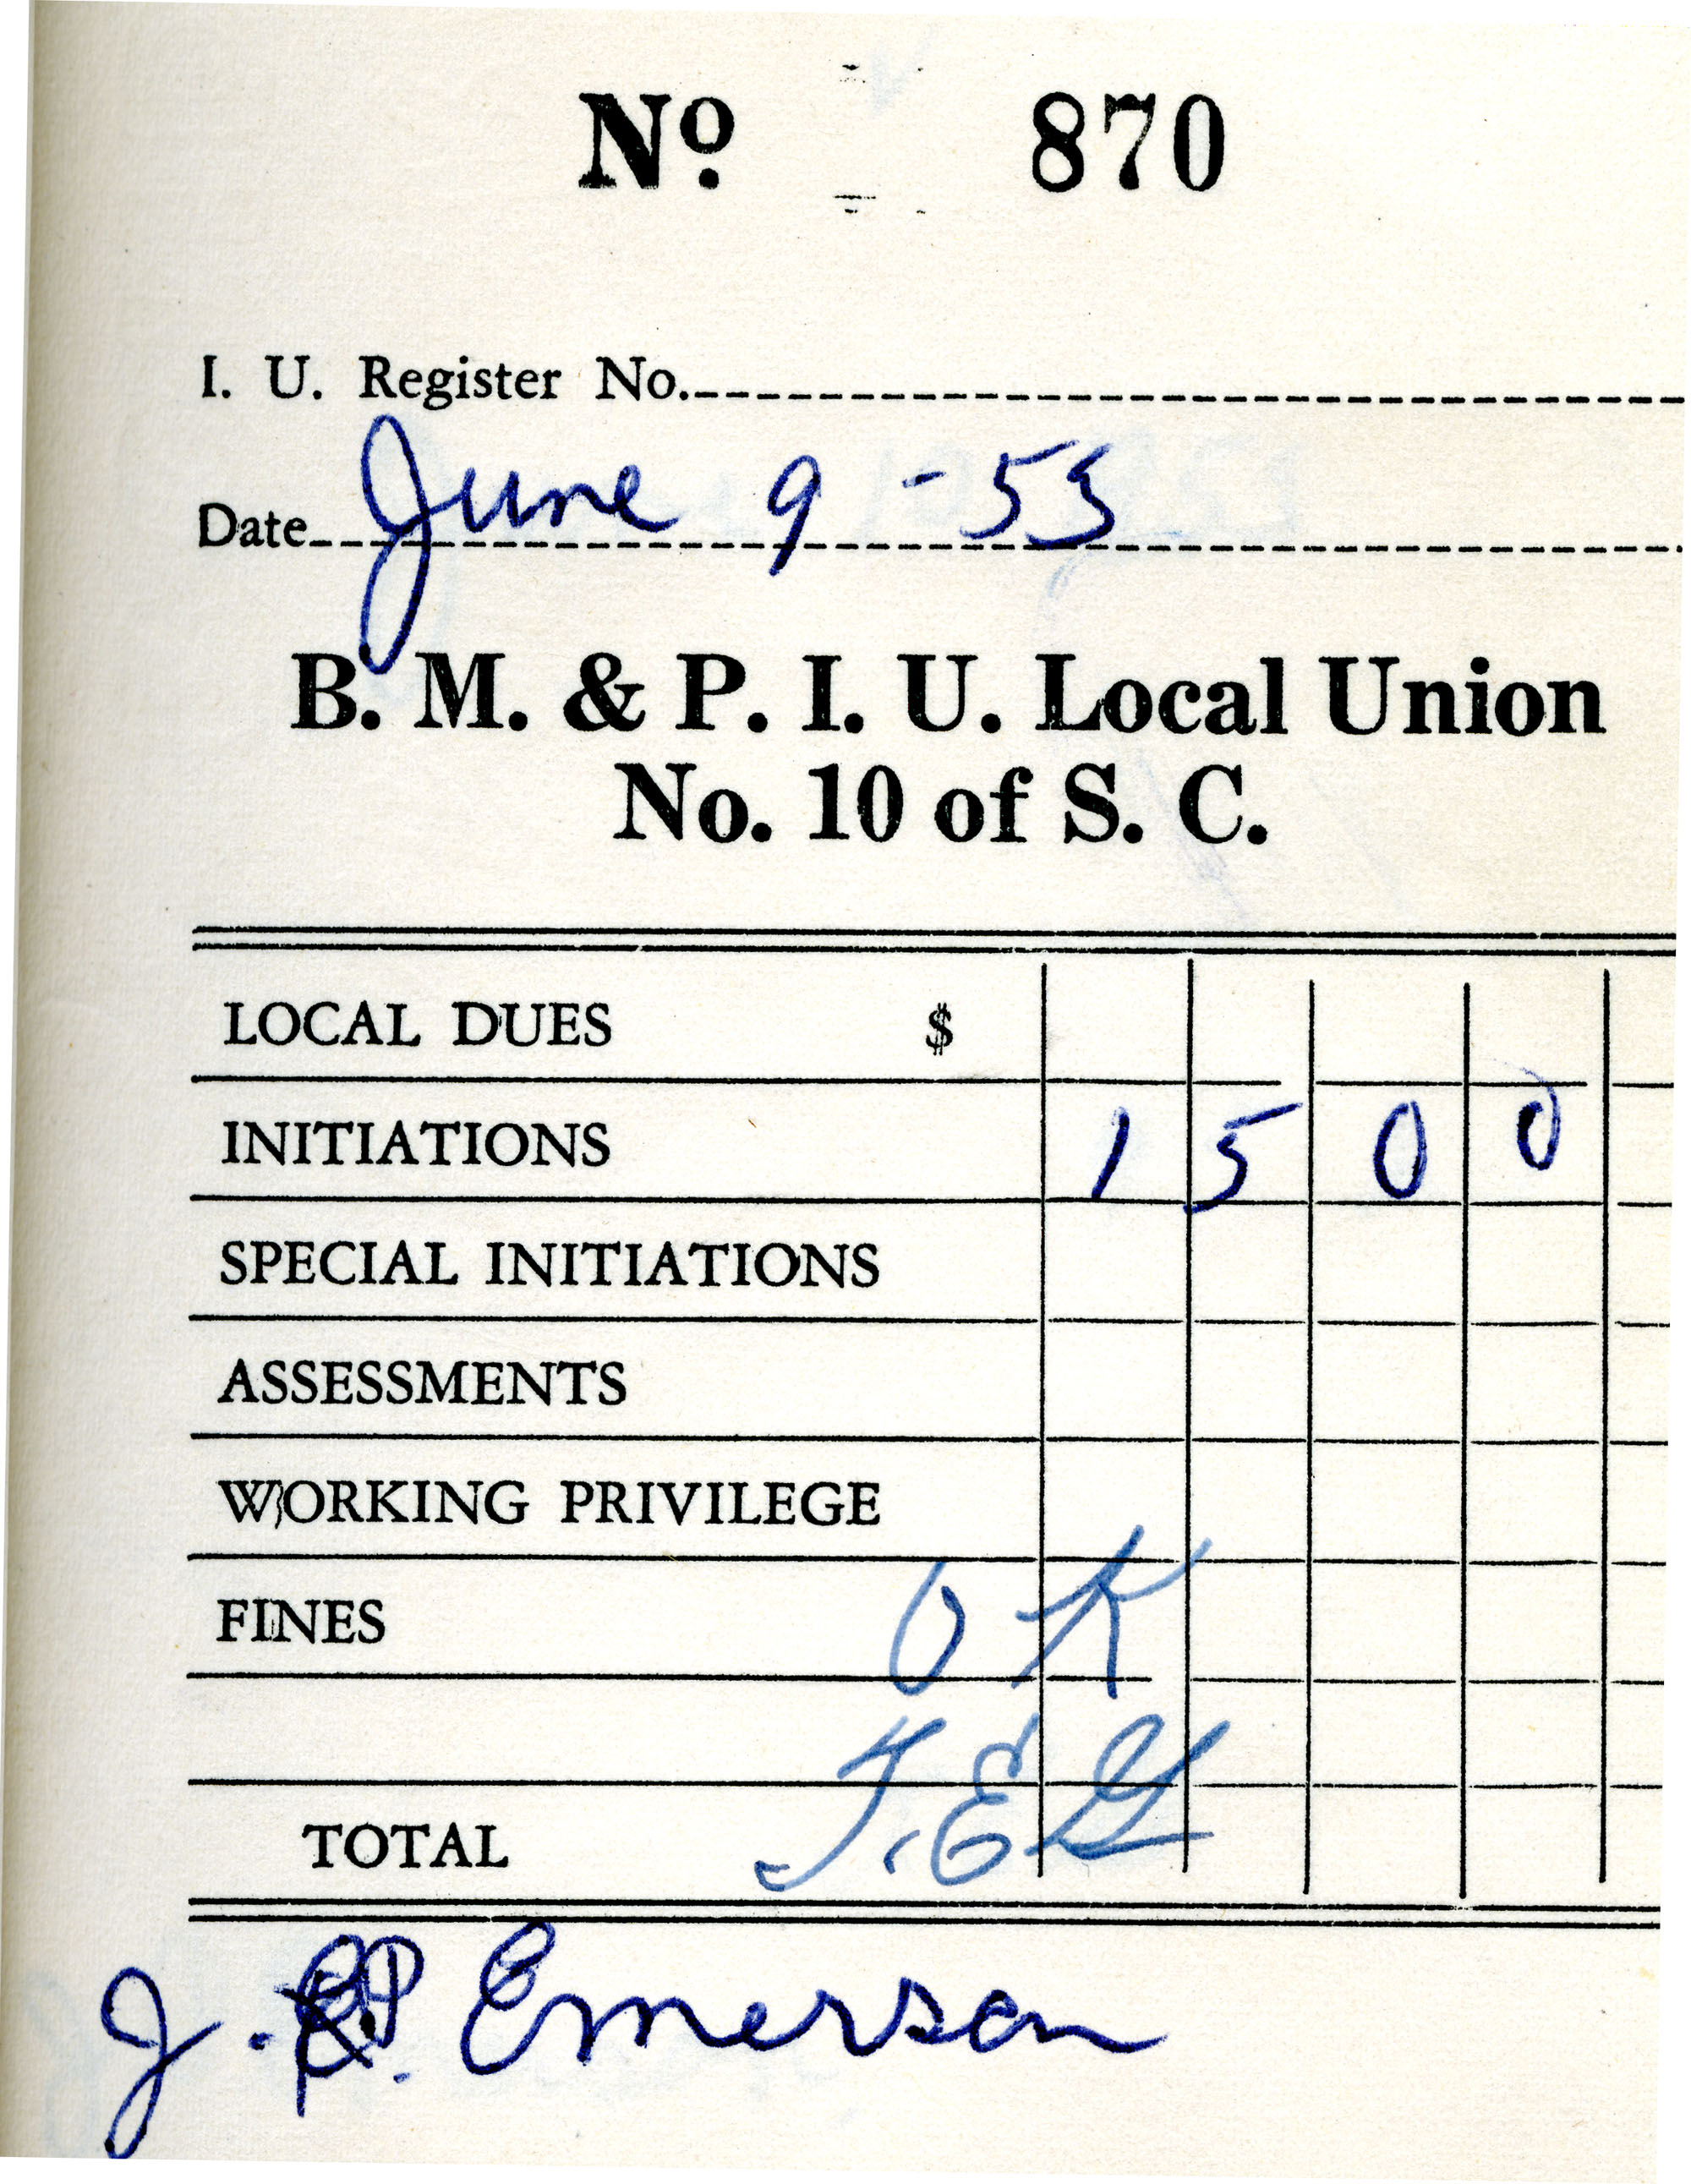 Receipt Book 3, Page 15